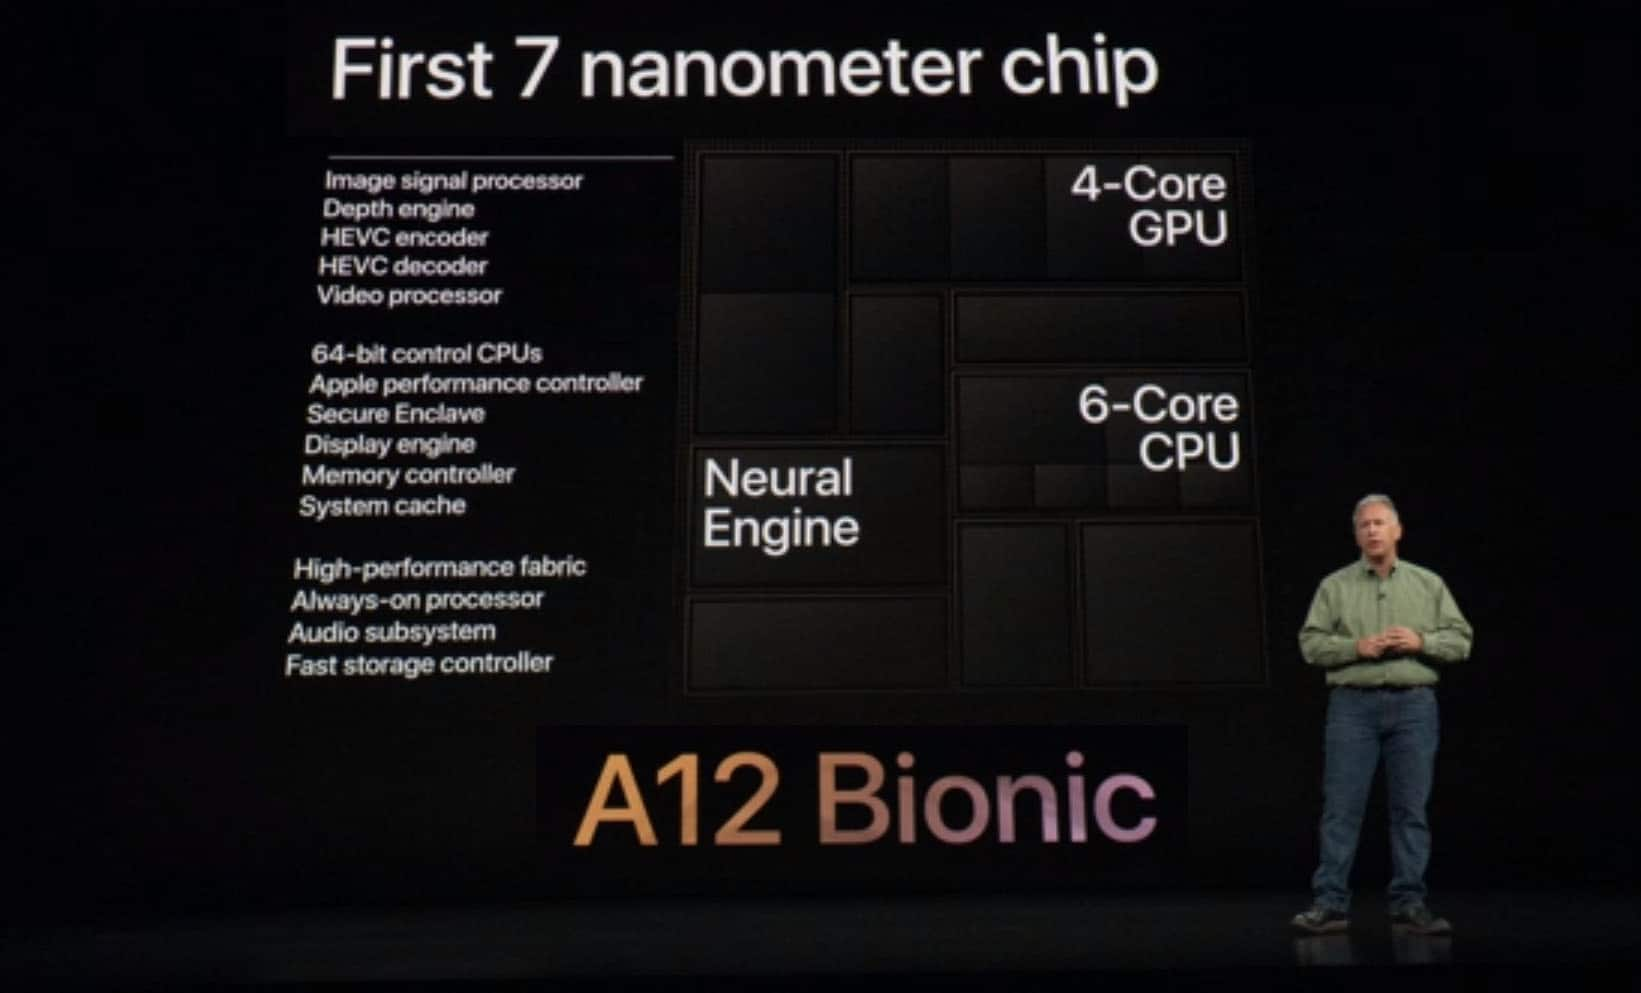 Iphone Xs, Xs Max and Xr Chipset Information like Processor , GPU and Neural Engine